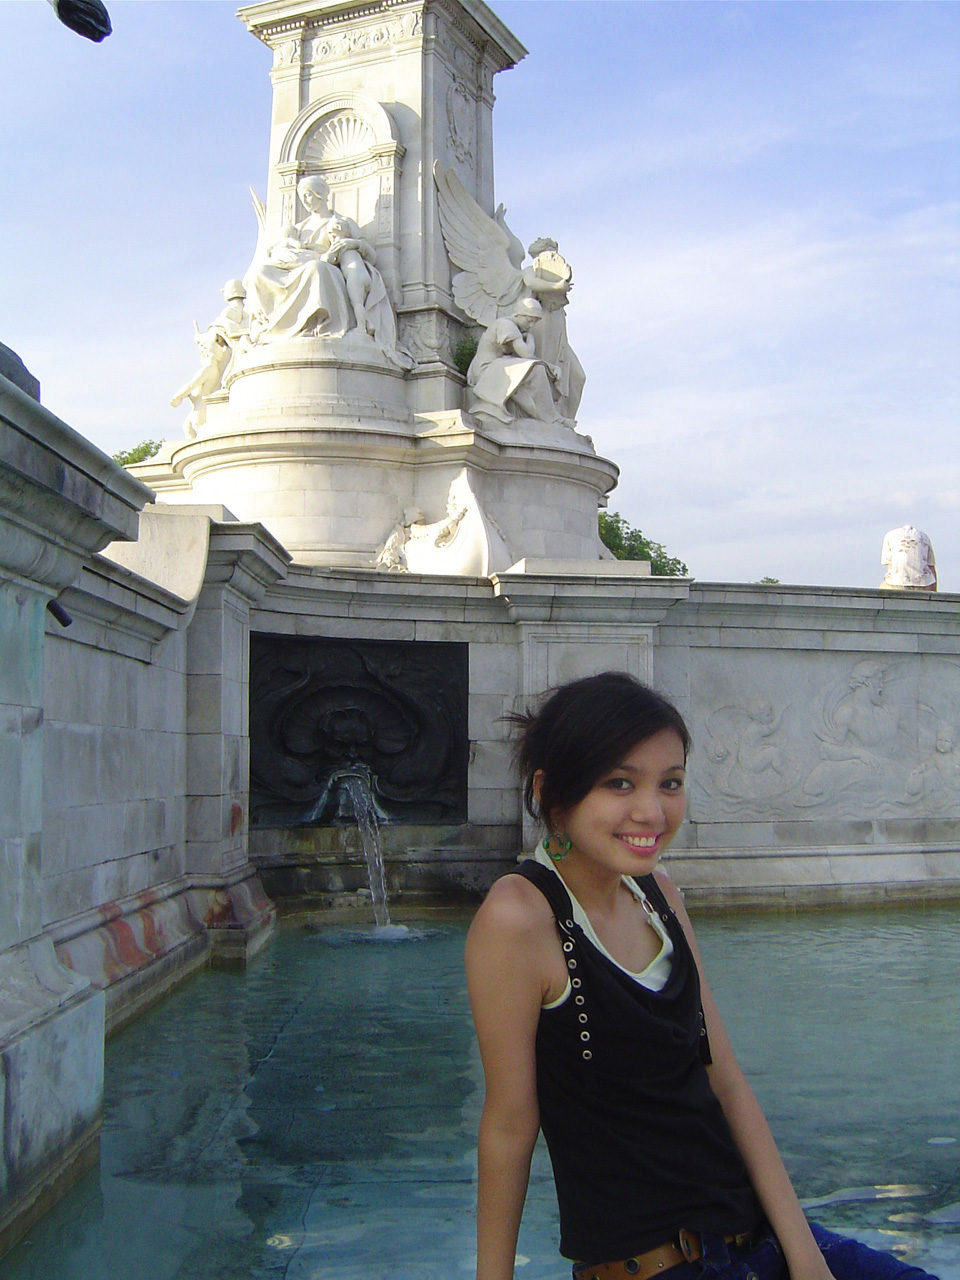 Sitting on the fountain step in front of Buckingham Palace.